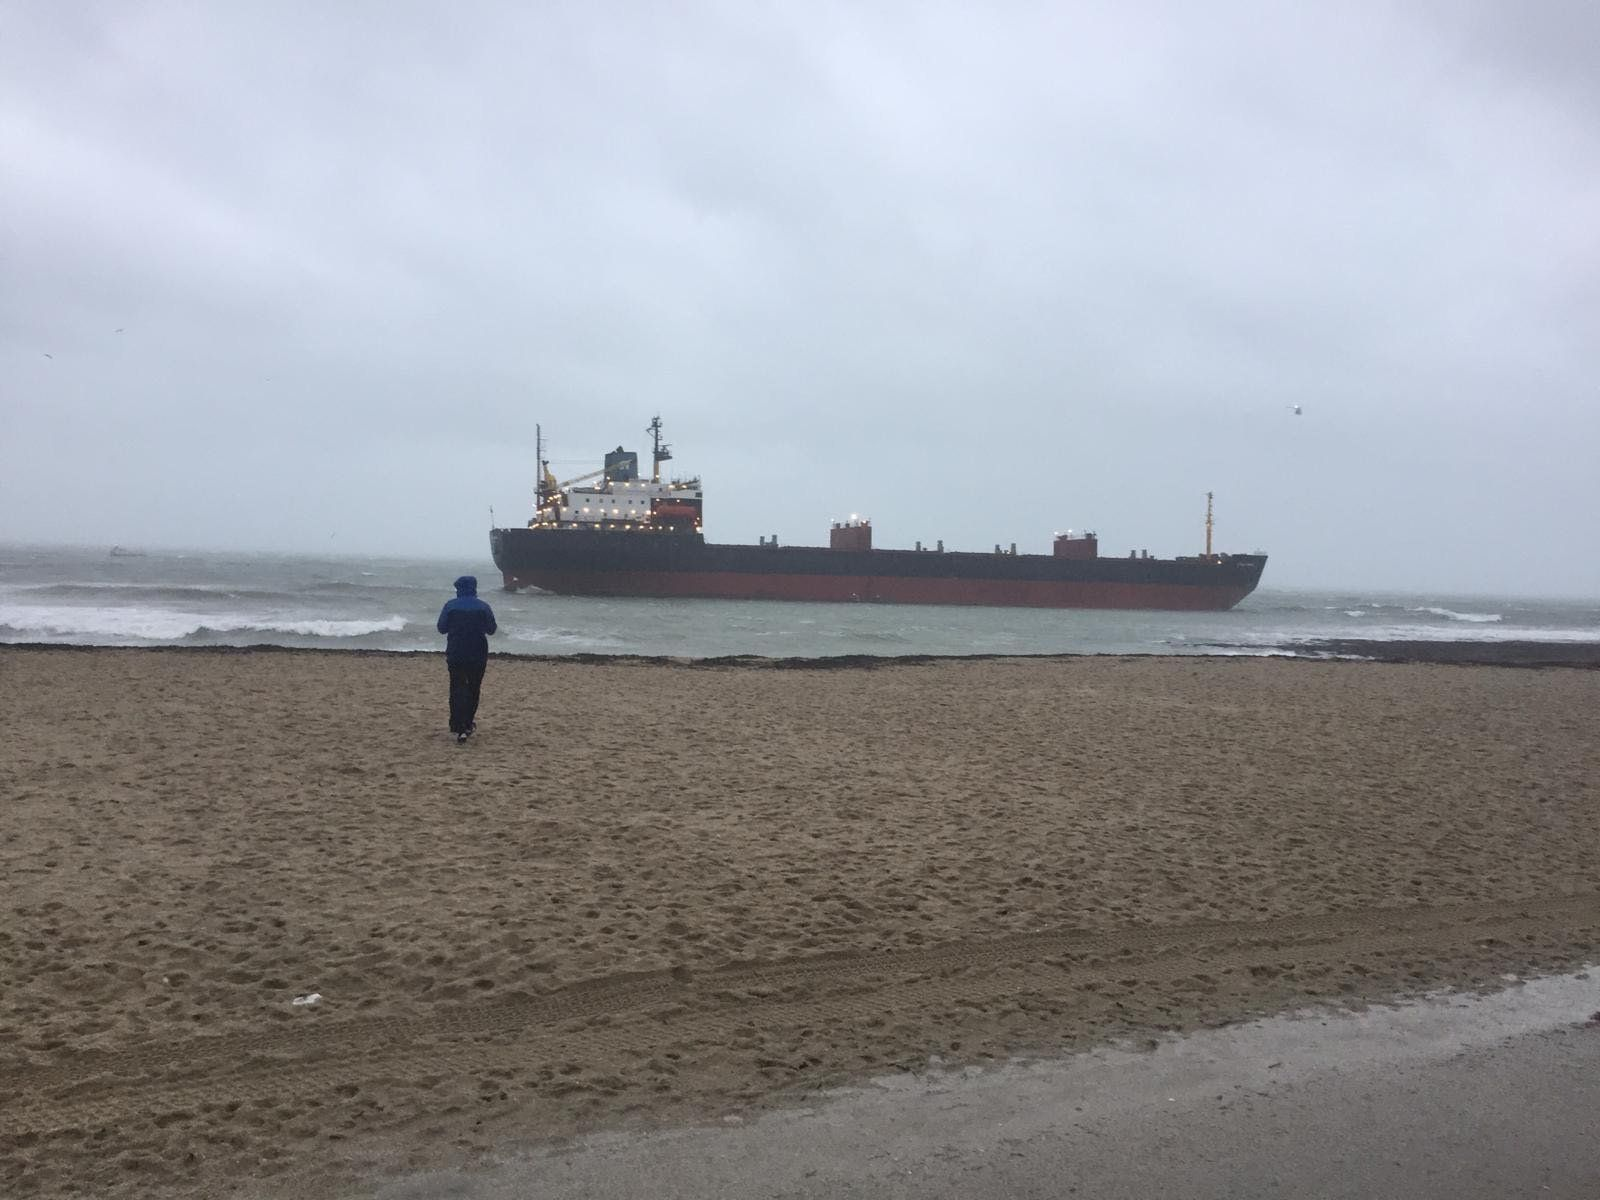 Russian cargo ship runs aground off SW England - coastguard